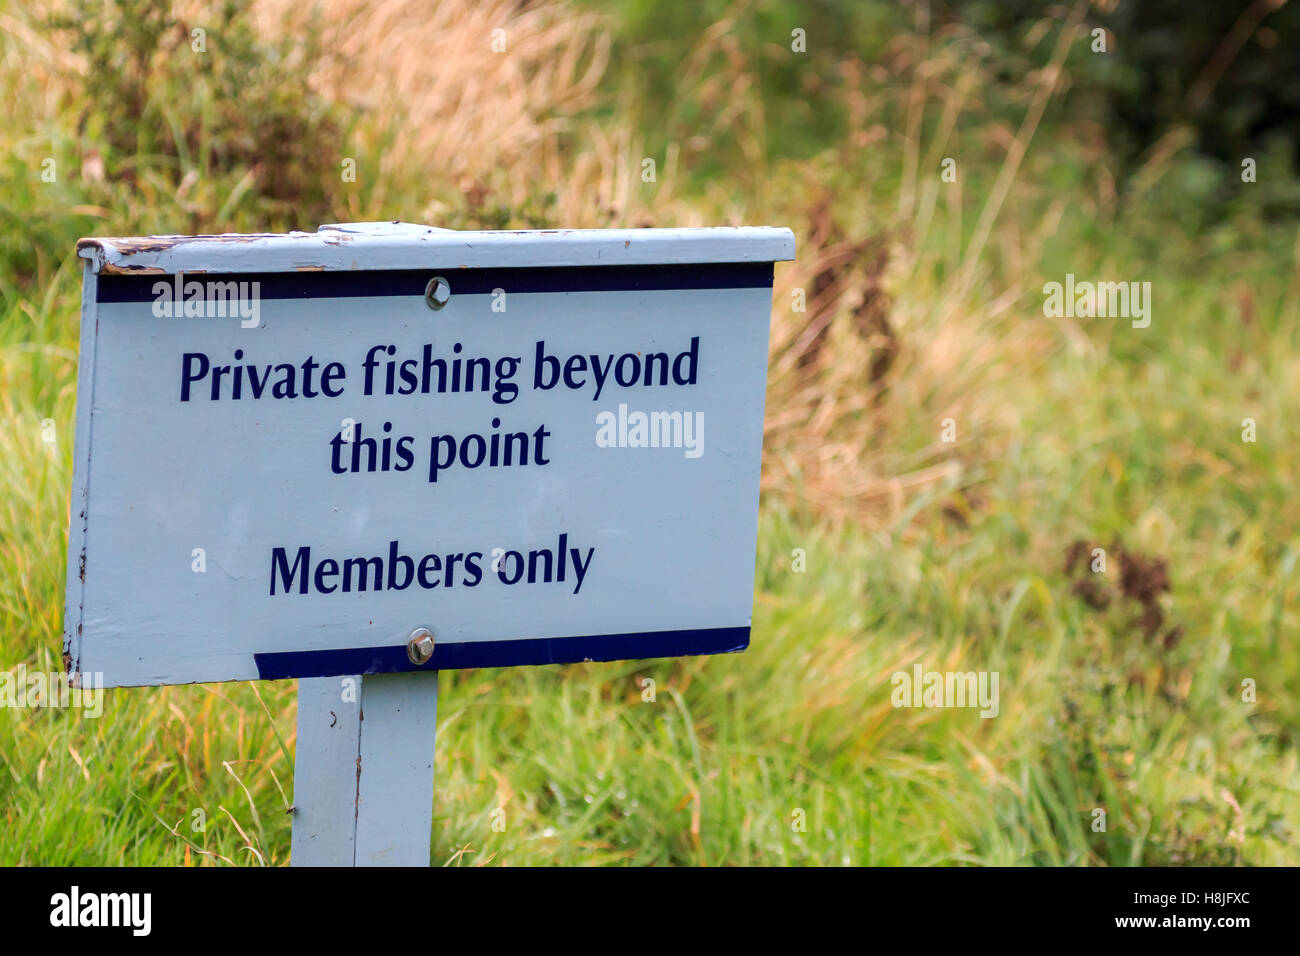 Private no fishing beyond this point, members only sign - Stock Image